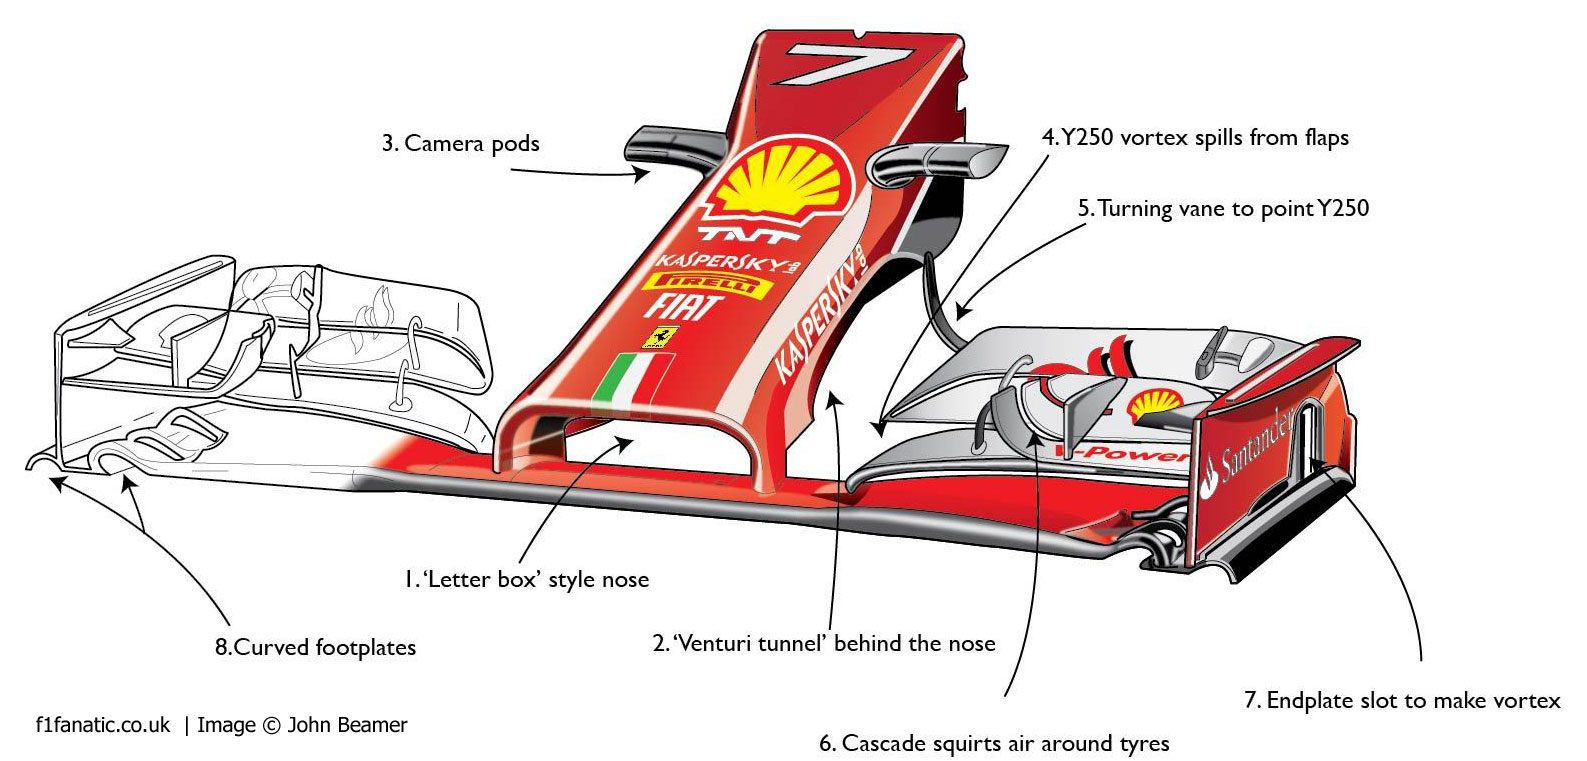 Ferrari S Unusual Approach To F1 S New Nose Rules Racefans